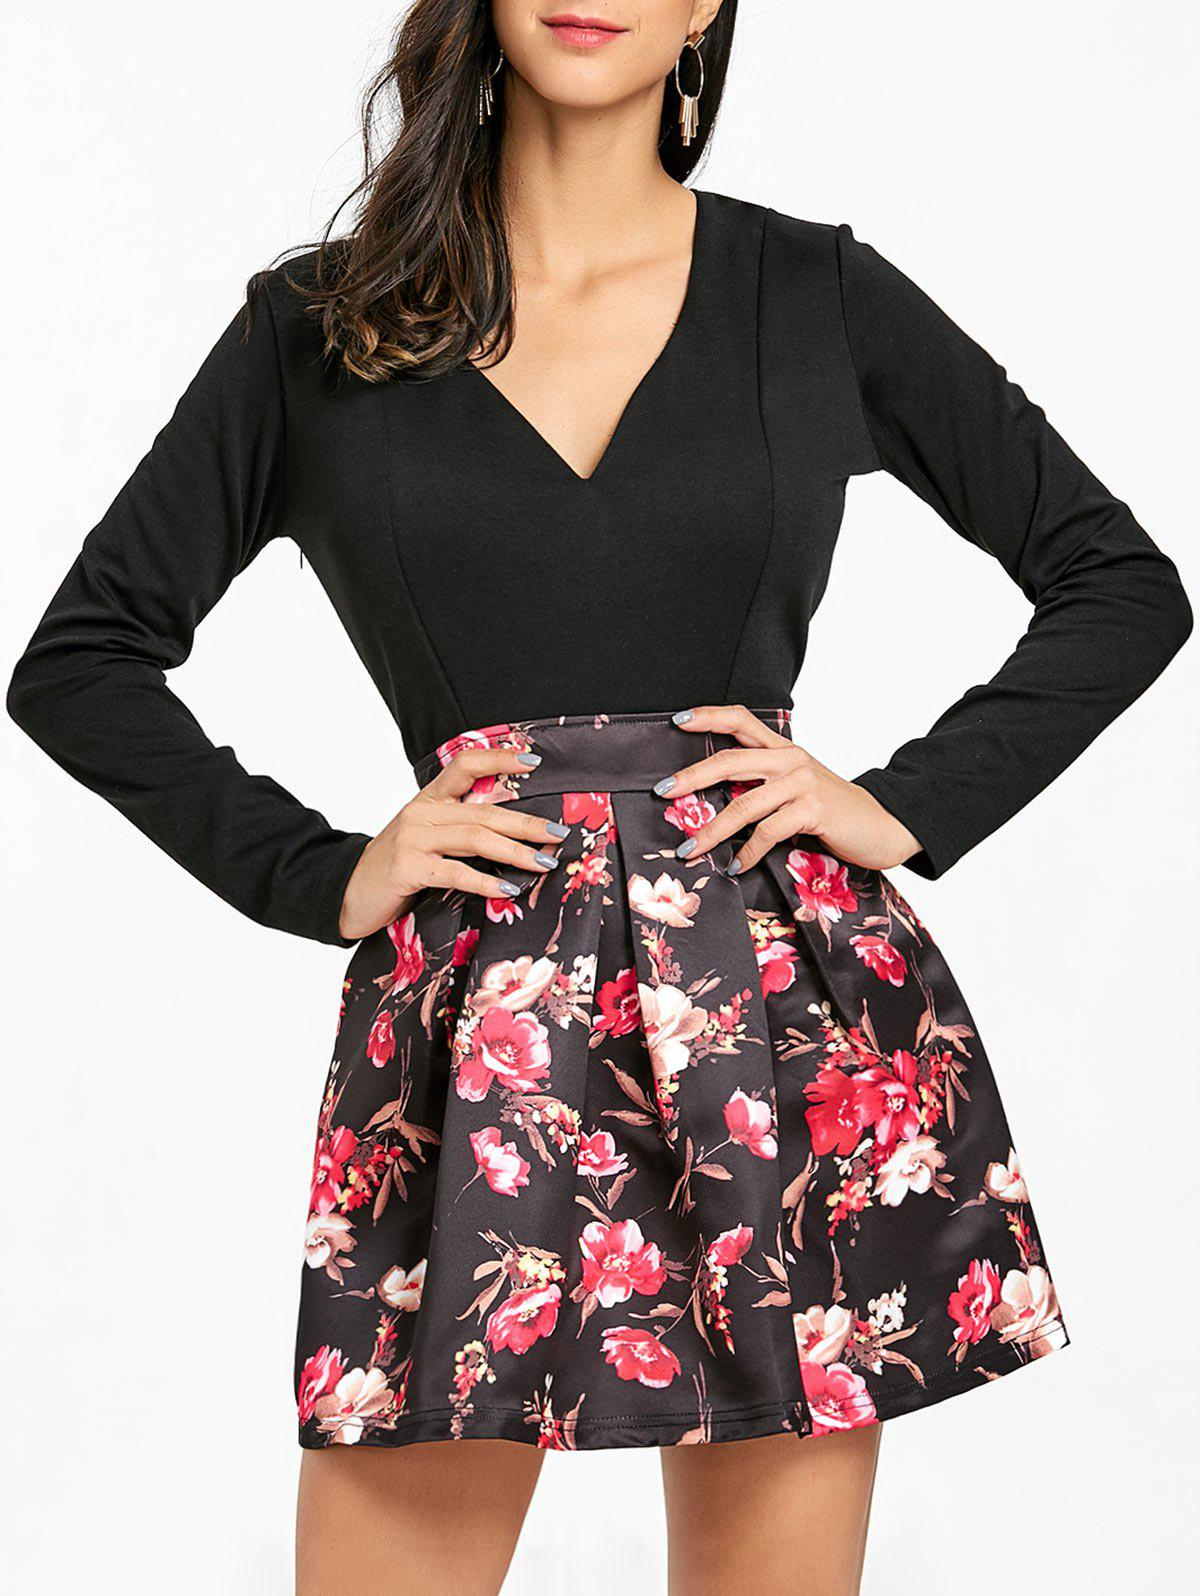 V Neck Floral Print Skater Mini Dress - BLACK XL